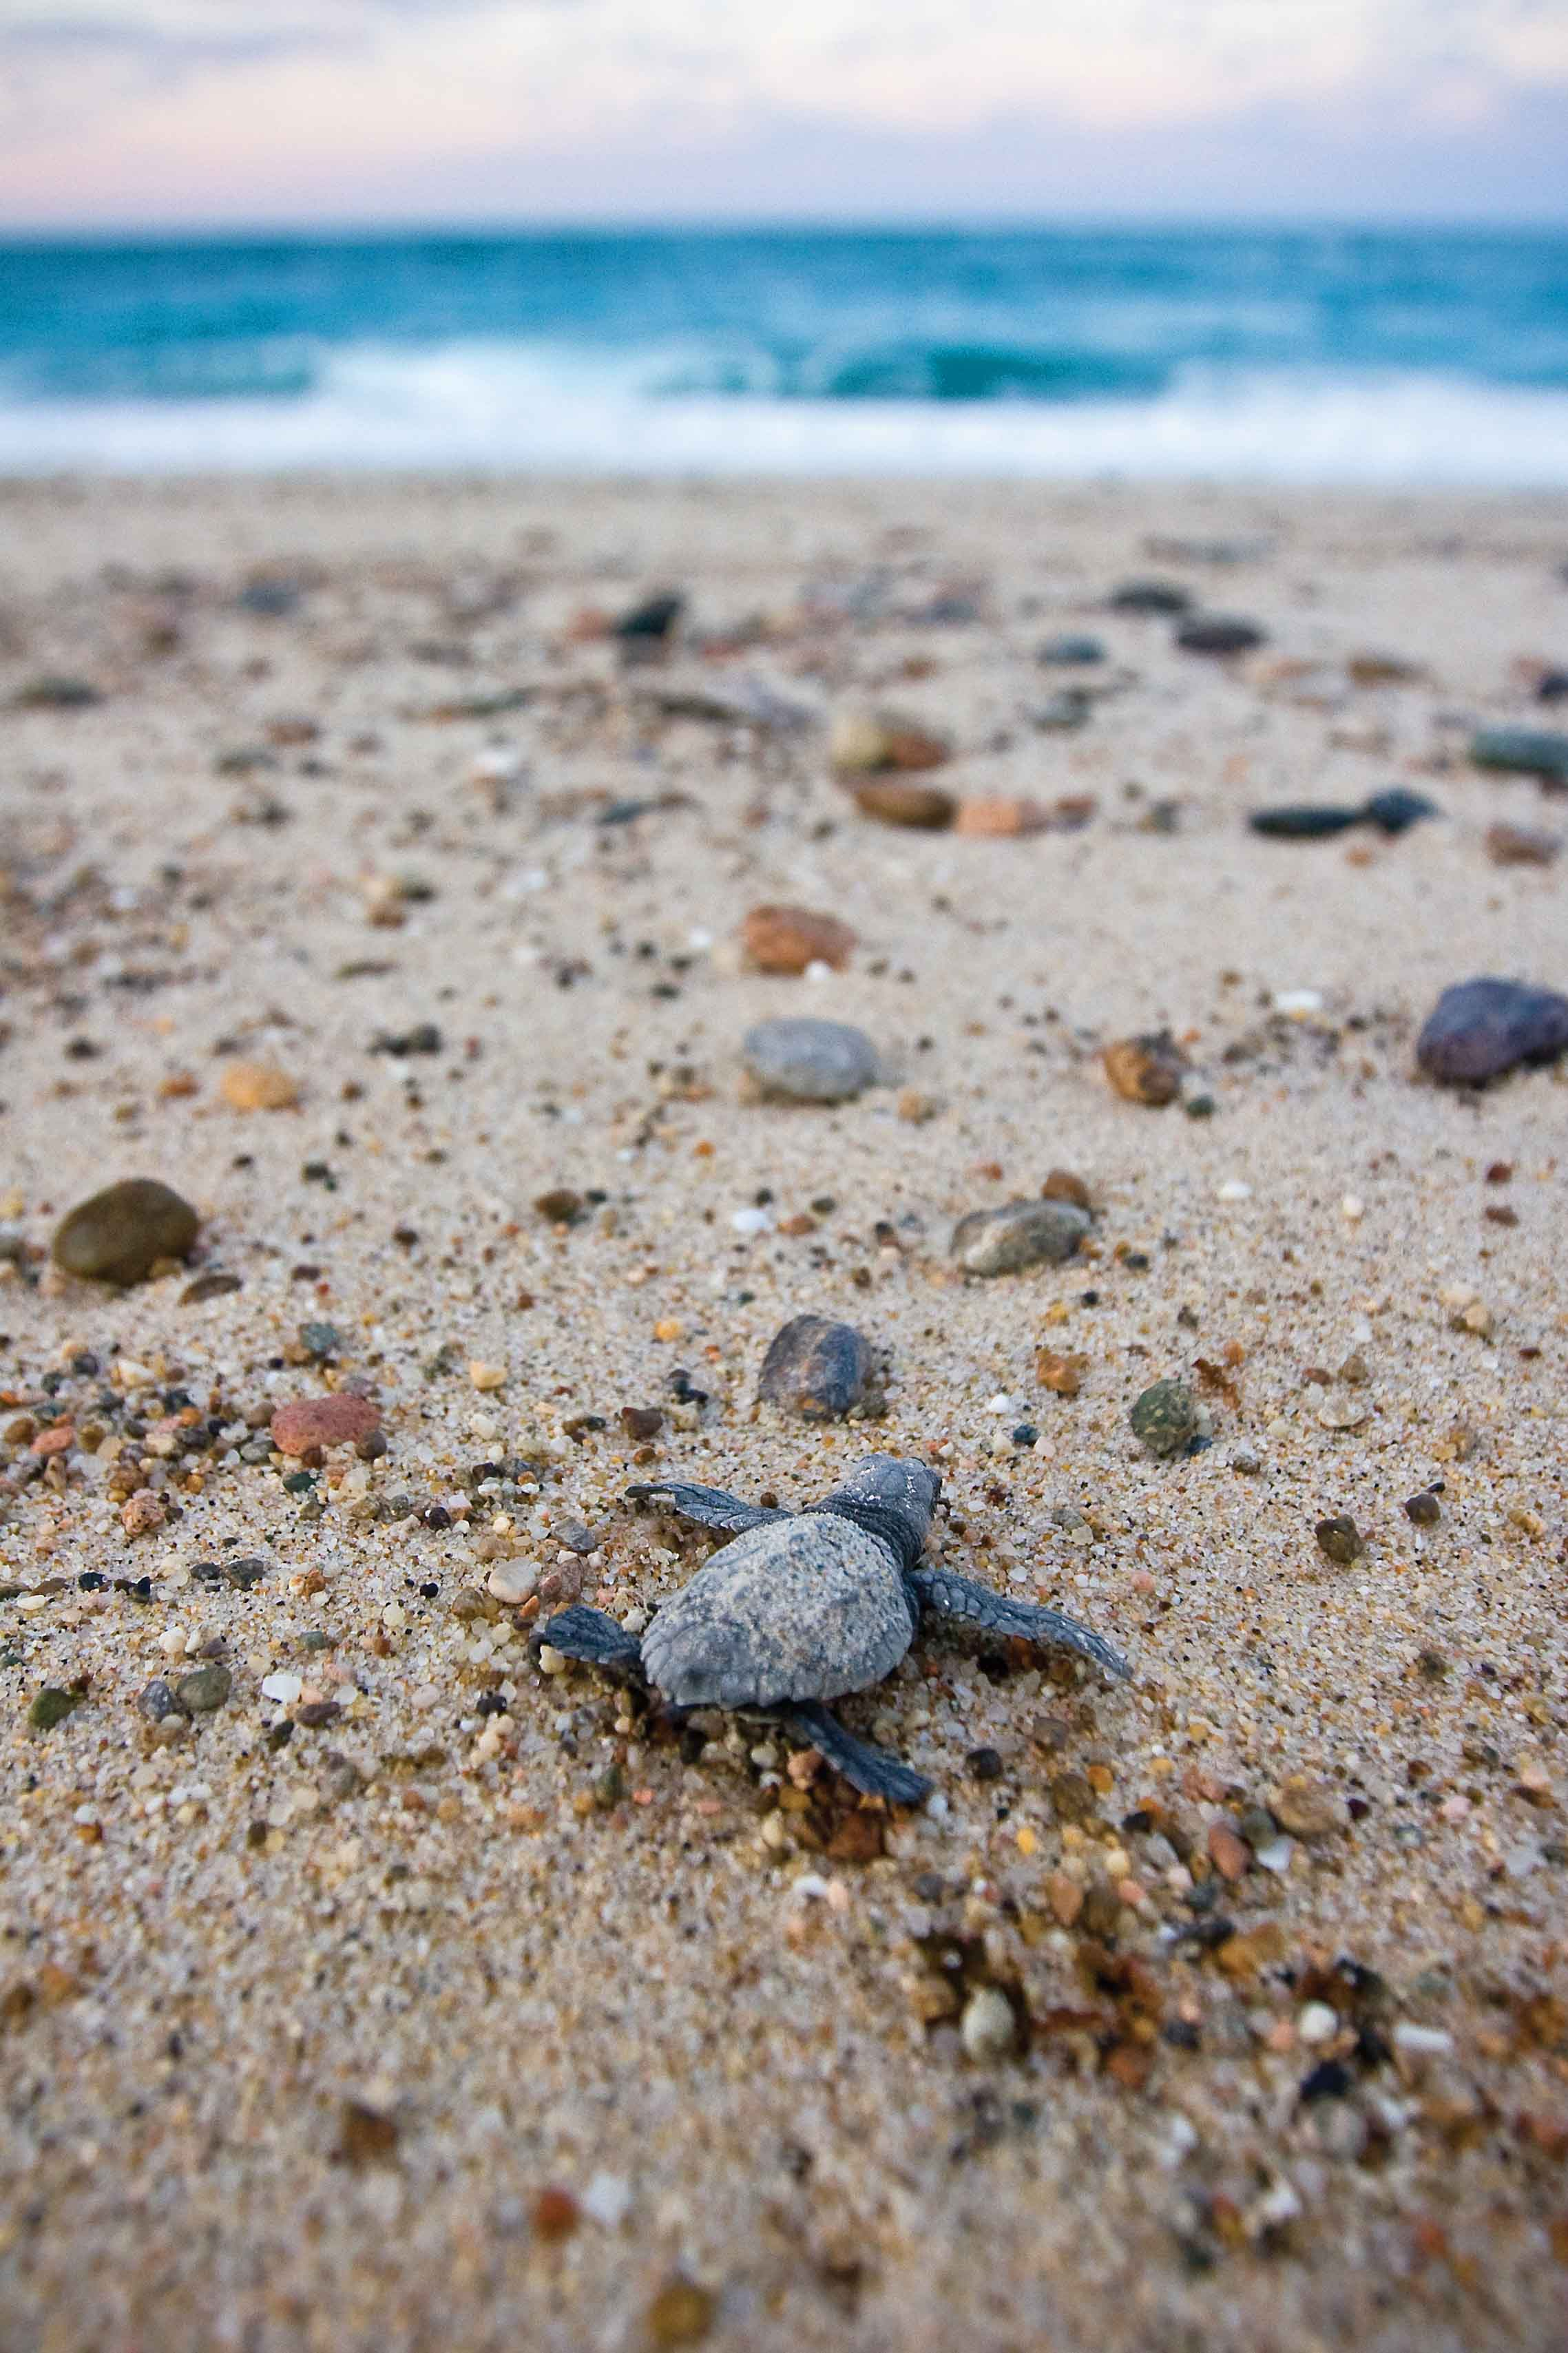 An olive ridley hatchling makes its way to the sea in Baja, California, Mexico, forced to overcome not only stones and other beach debris, but also many hungry predators. © Brian J. Hutchinson